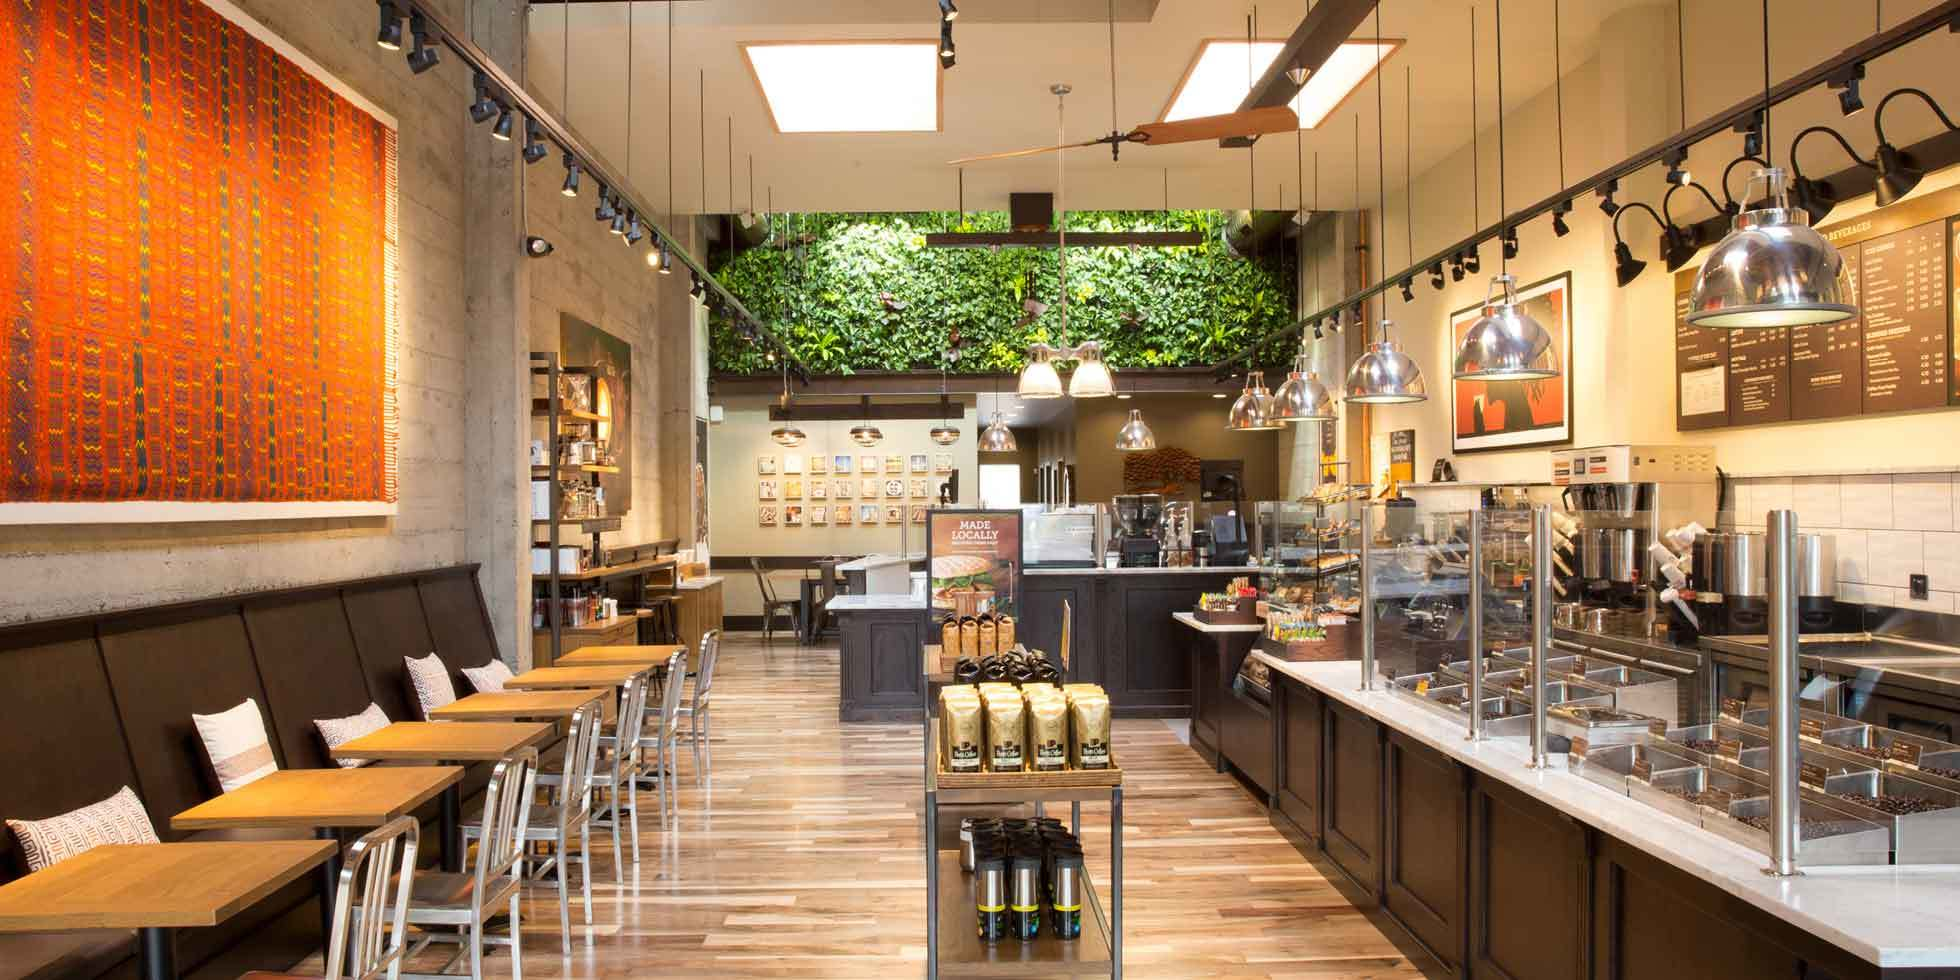 Peet's Coffee & Tea Living Wall by Habitat Horticulture - View 2